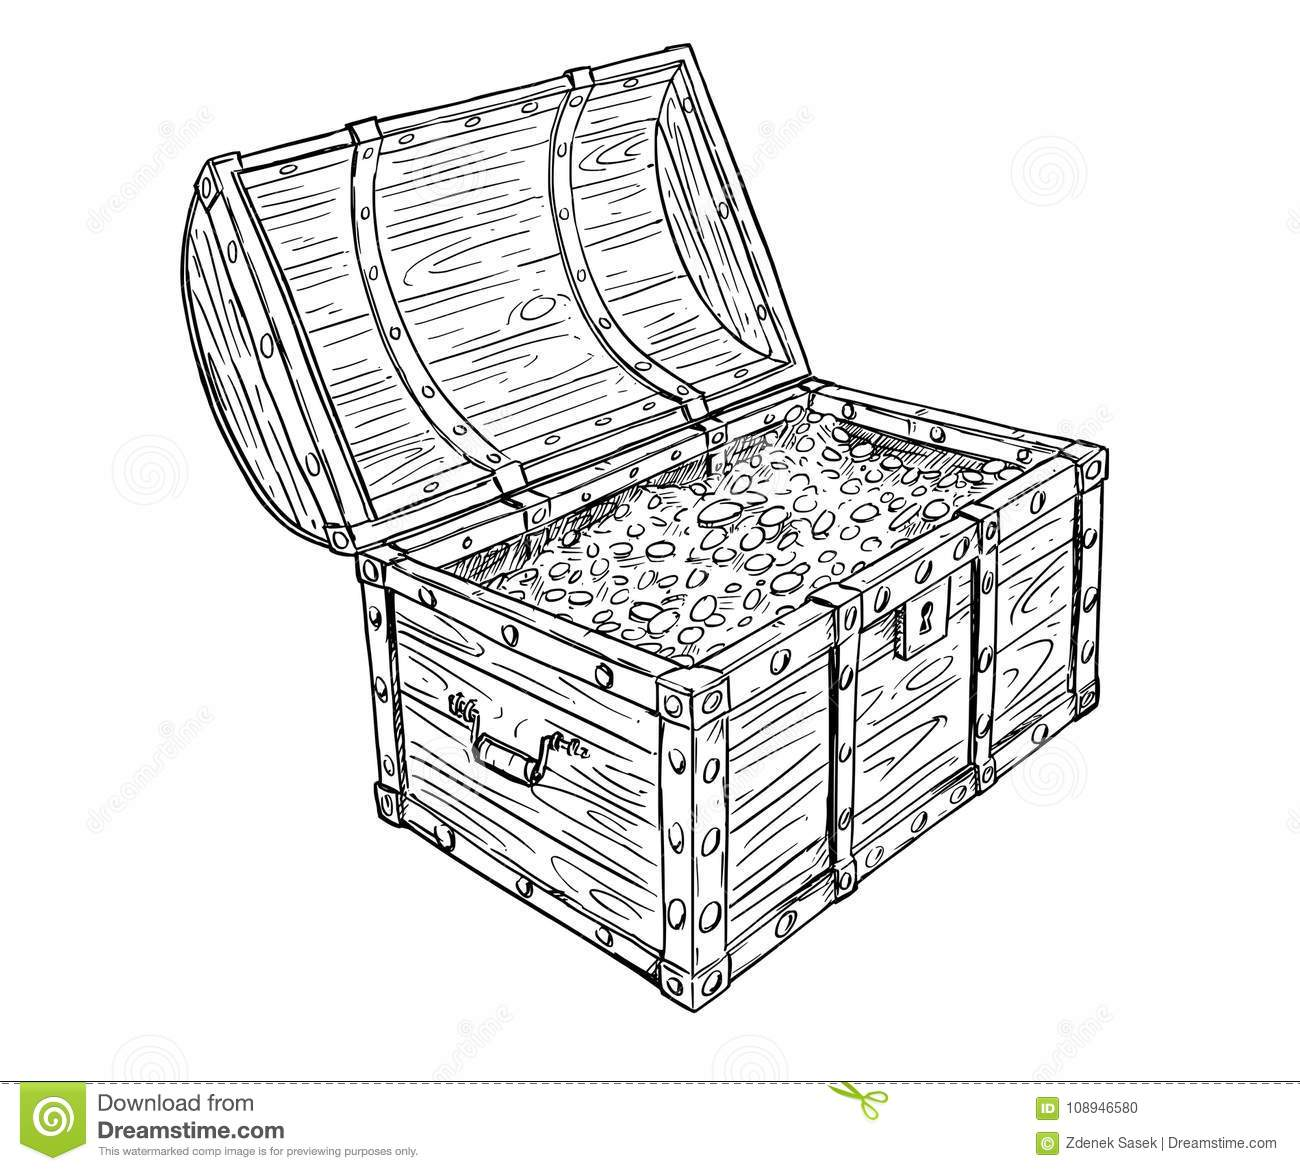 Cartoon Vector Drawing Of Old Open Pirate Treasure Chest